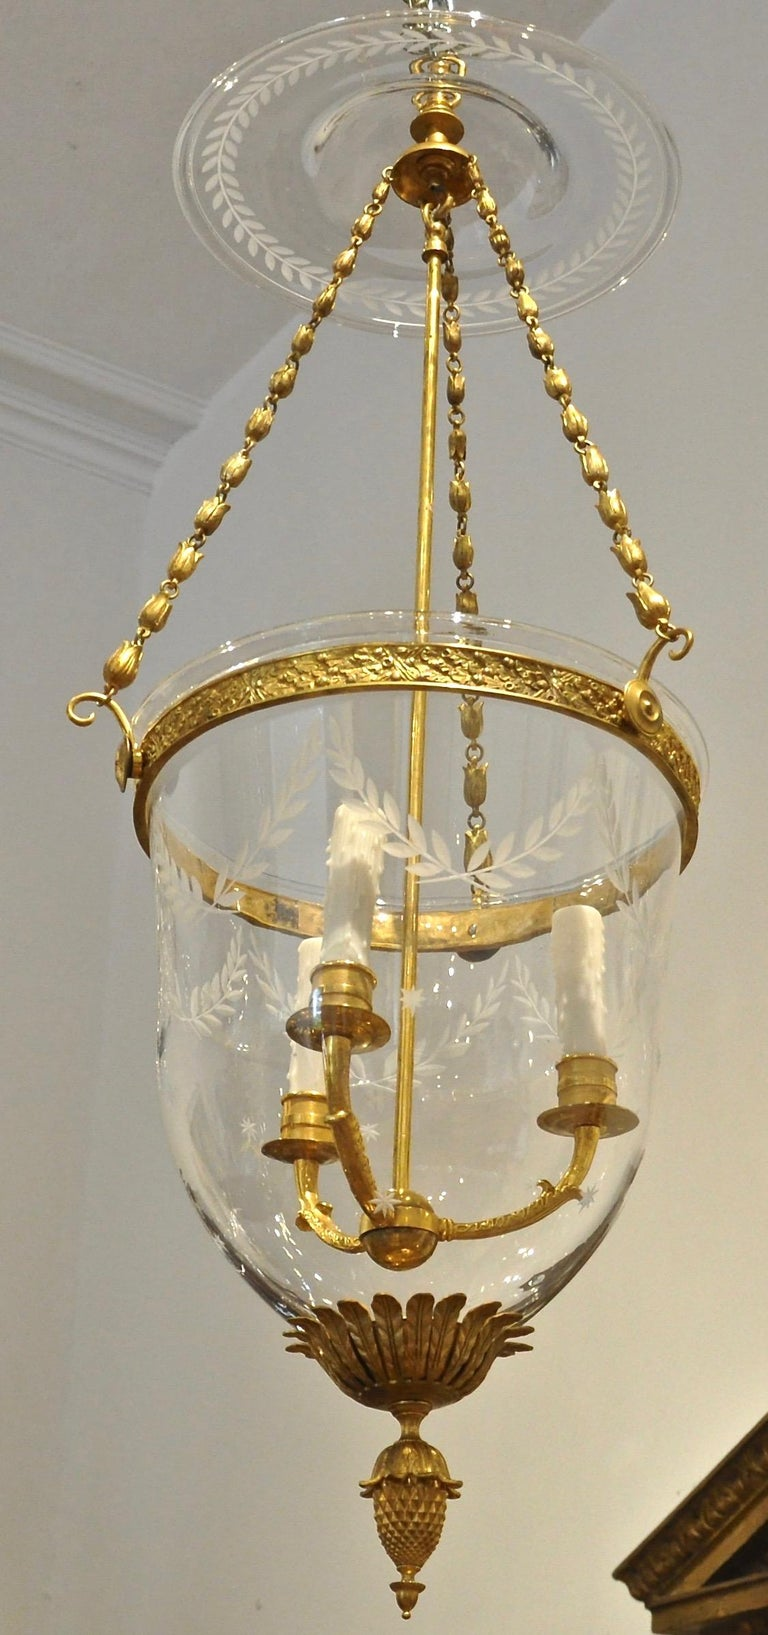 Etched Russian Gilt Bronze Neoclassical Style Bell Jar Hall Lantern For Sale